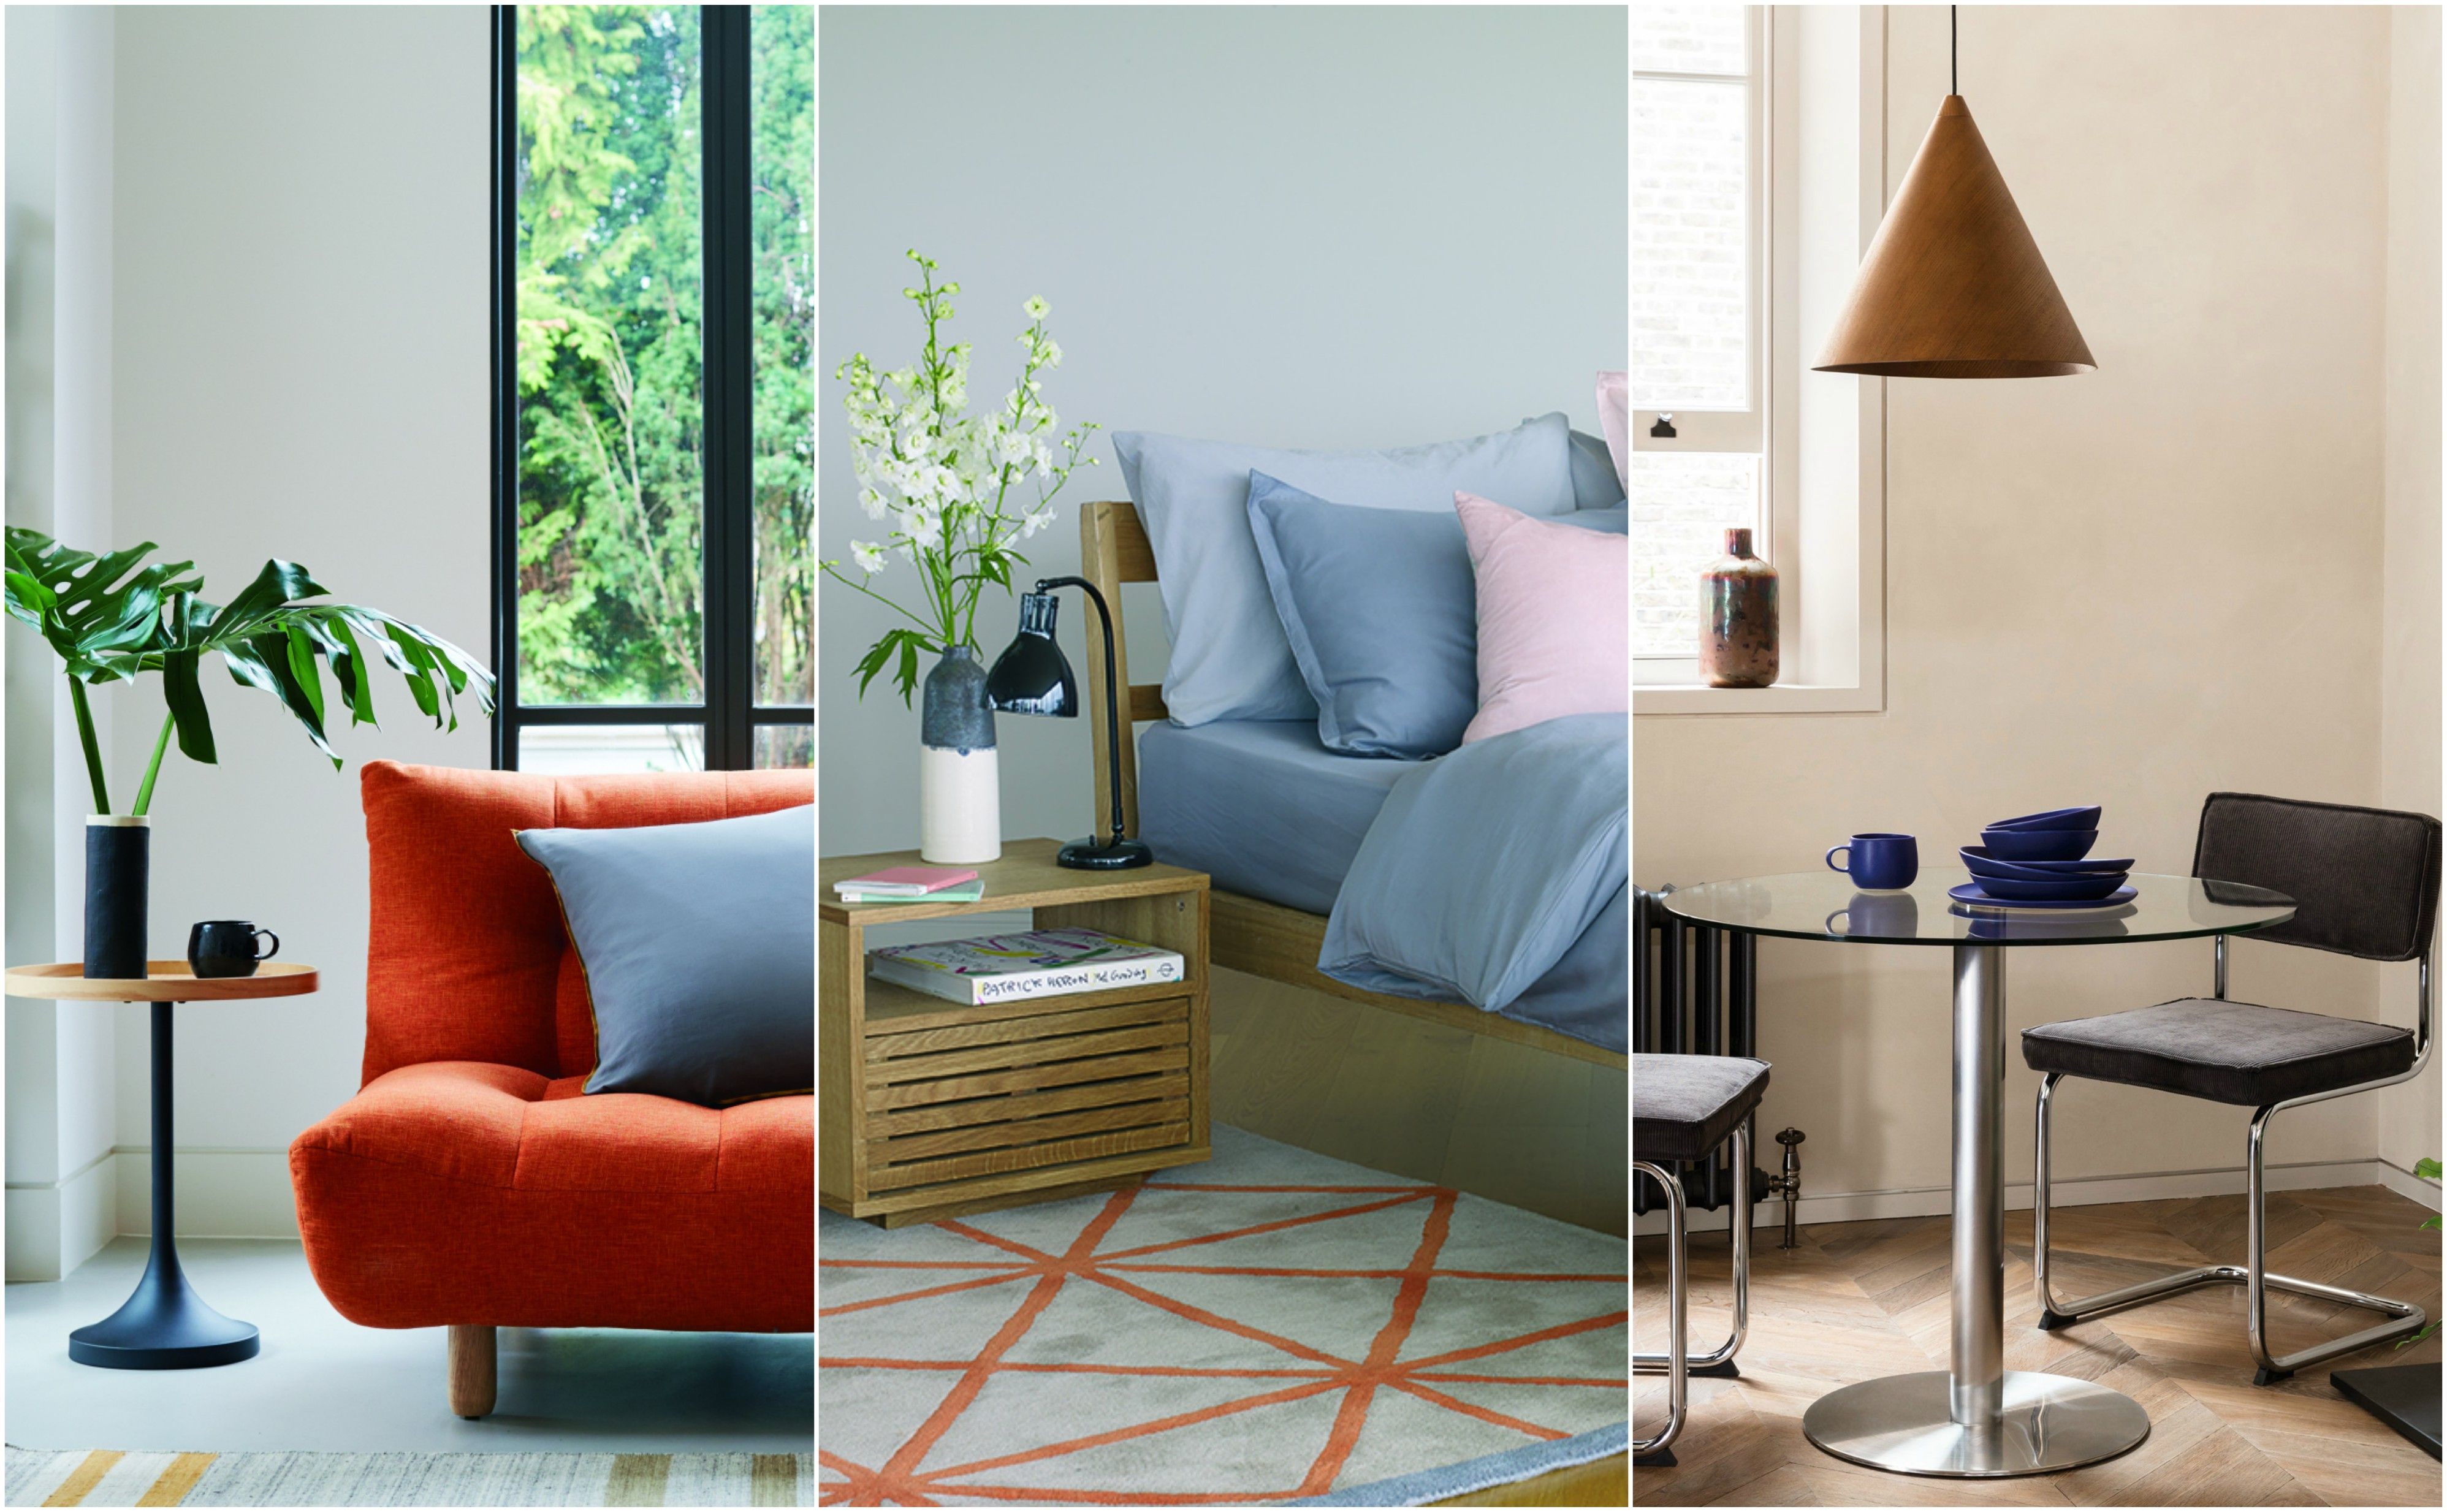 make living room spacious using simple and smart tricks the interior design company 10 clever small space living hacks that will transform your home